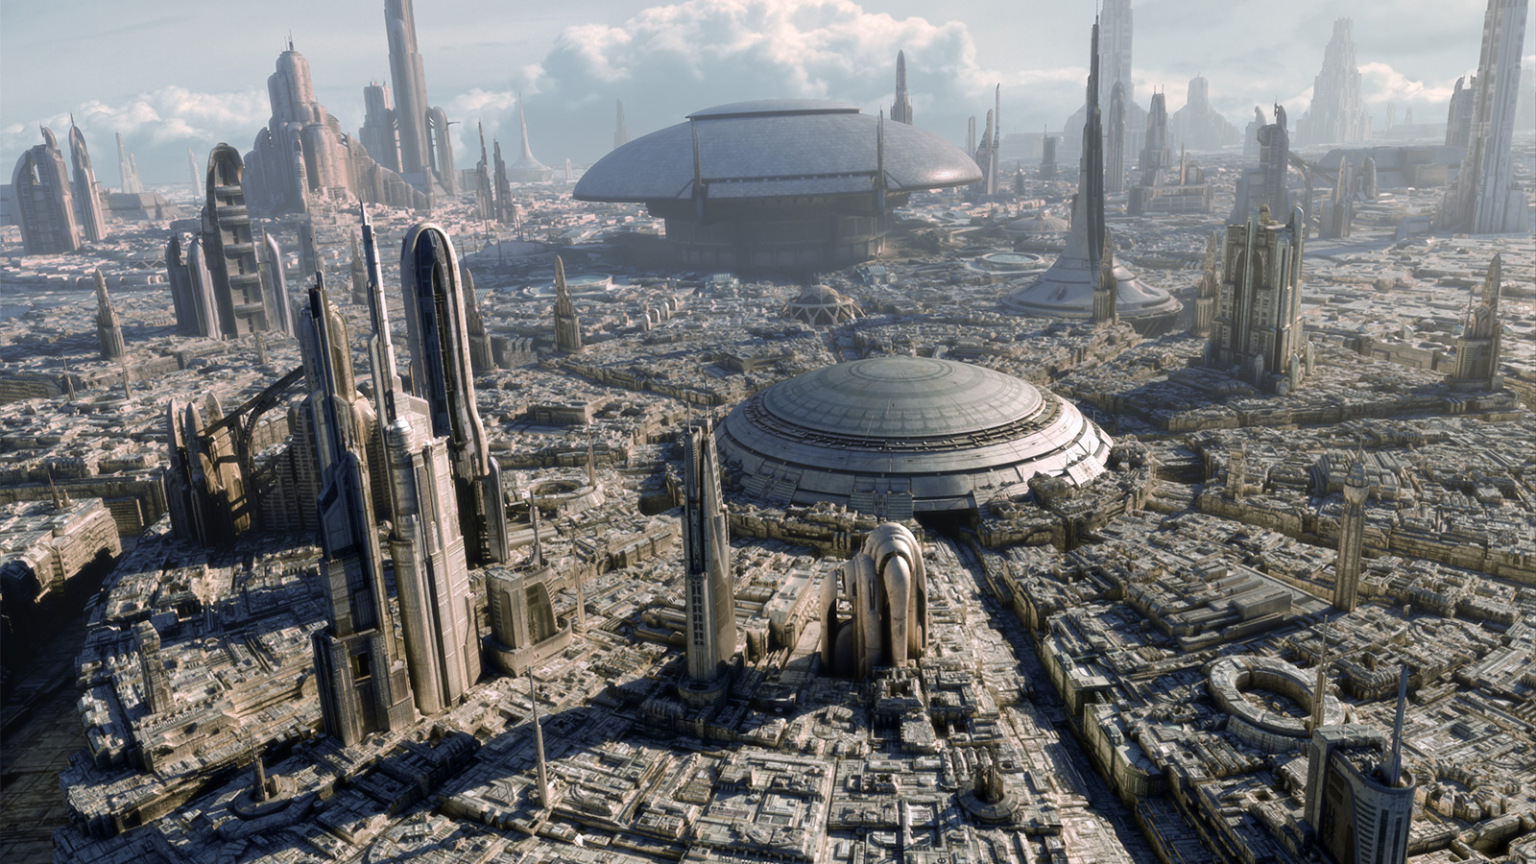 Cityscape of Coruscant from Star Wars